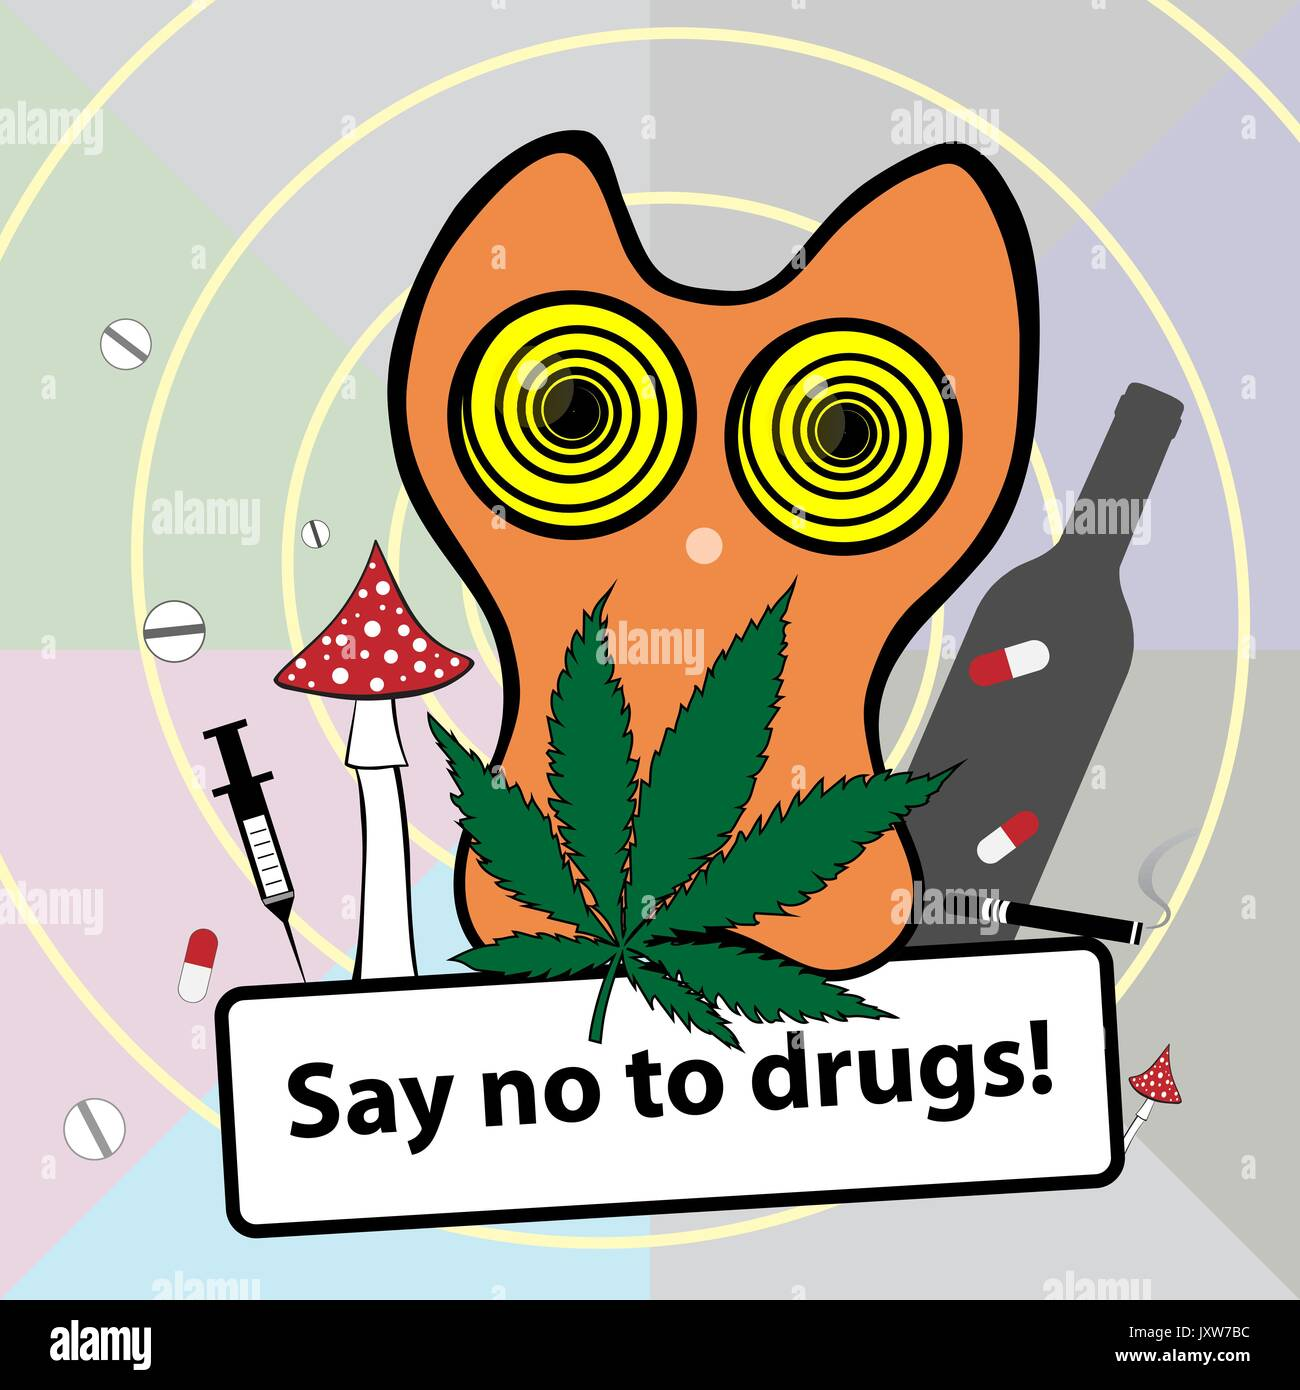 how to say no to drugs at a party